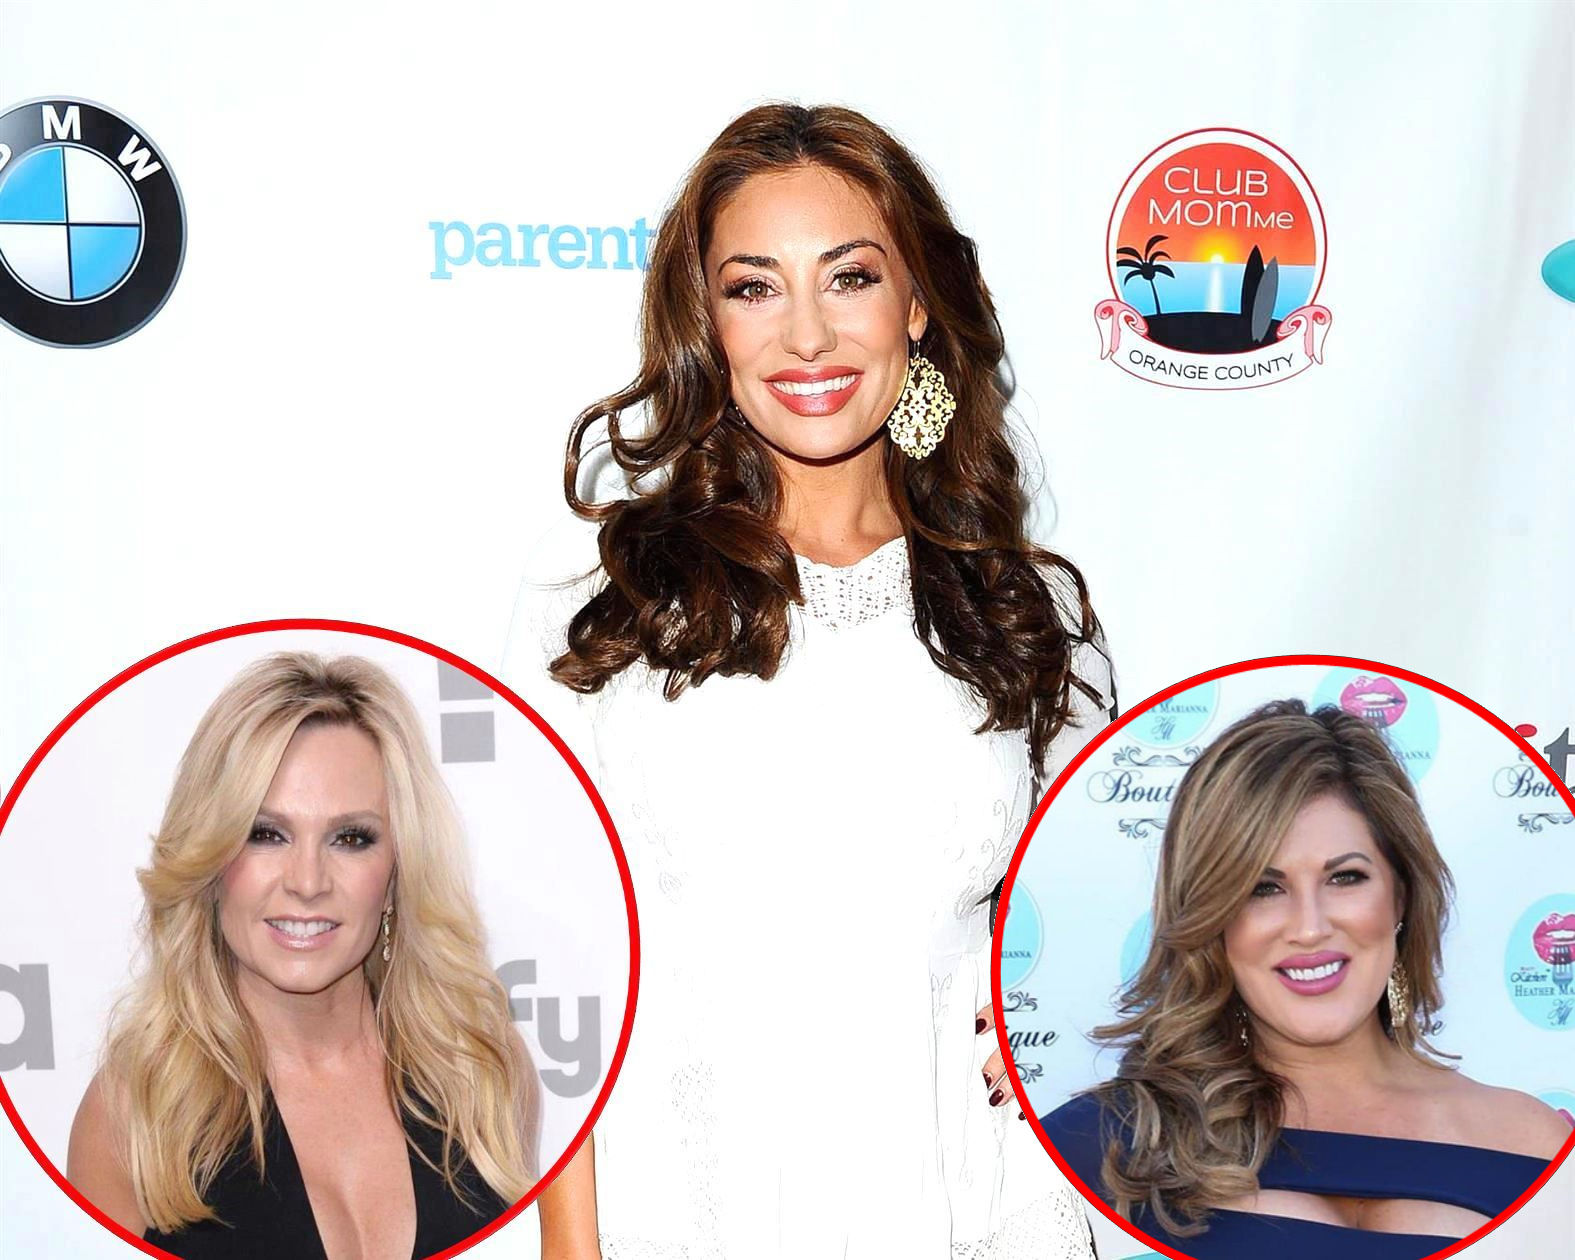 RHOC Lizzie Rovsek Reveals Tamra Judge Blocked Her From Attending Emily Simpson's Party